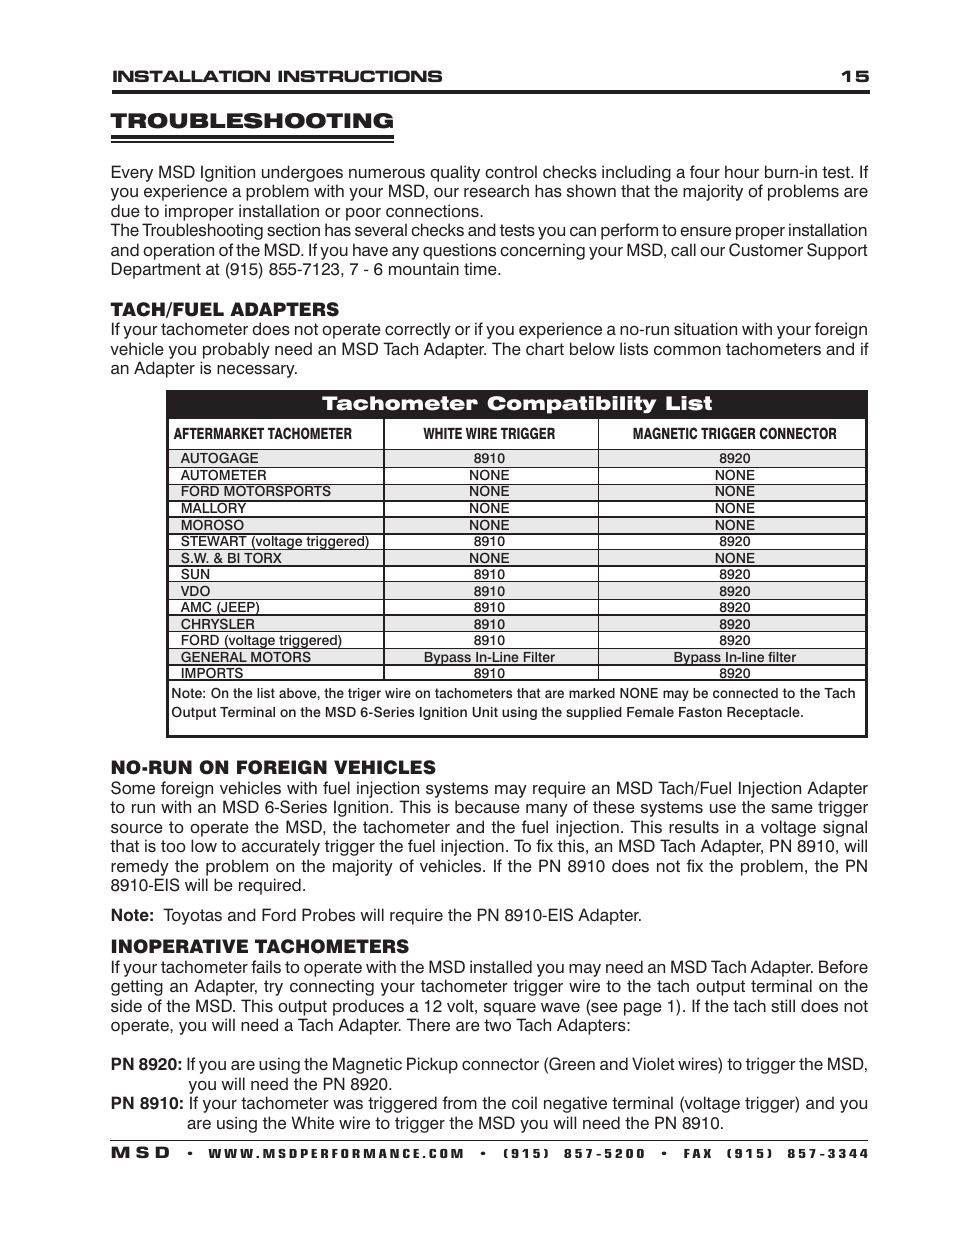 Troubleshooting Msd 6530 Digital Programmable 6al 2 Installation Tach Wiring Diagram User Manual Page 15 20